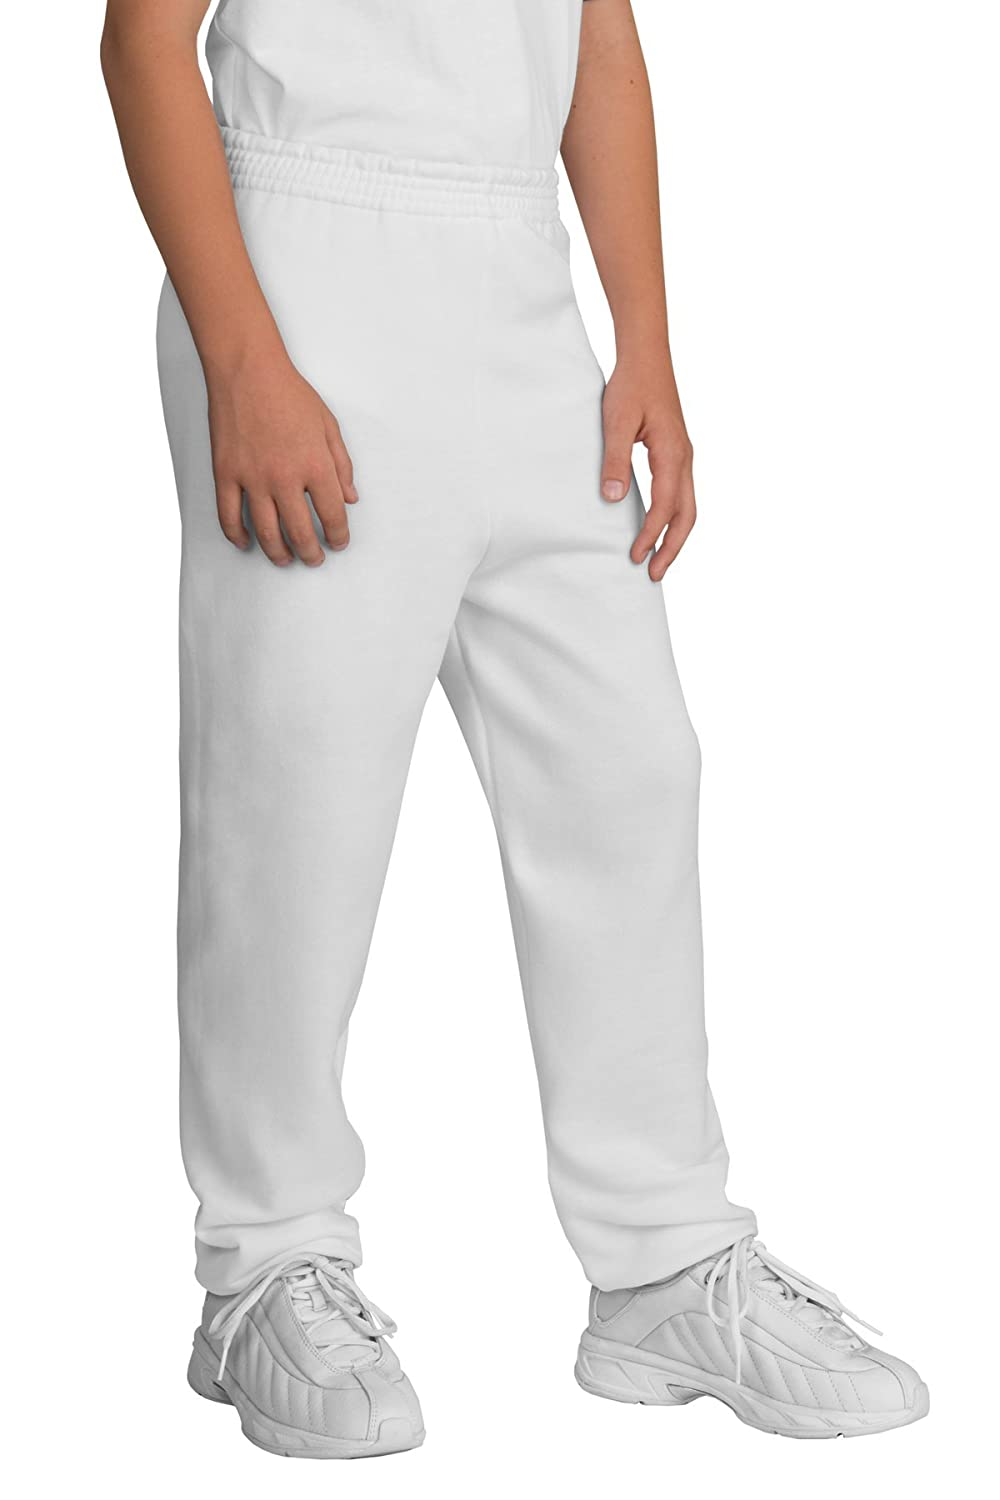 PC90YP Youth Sweatpant Port /& Company